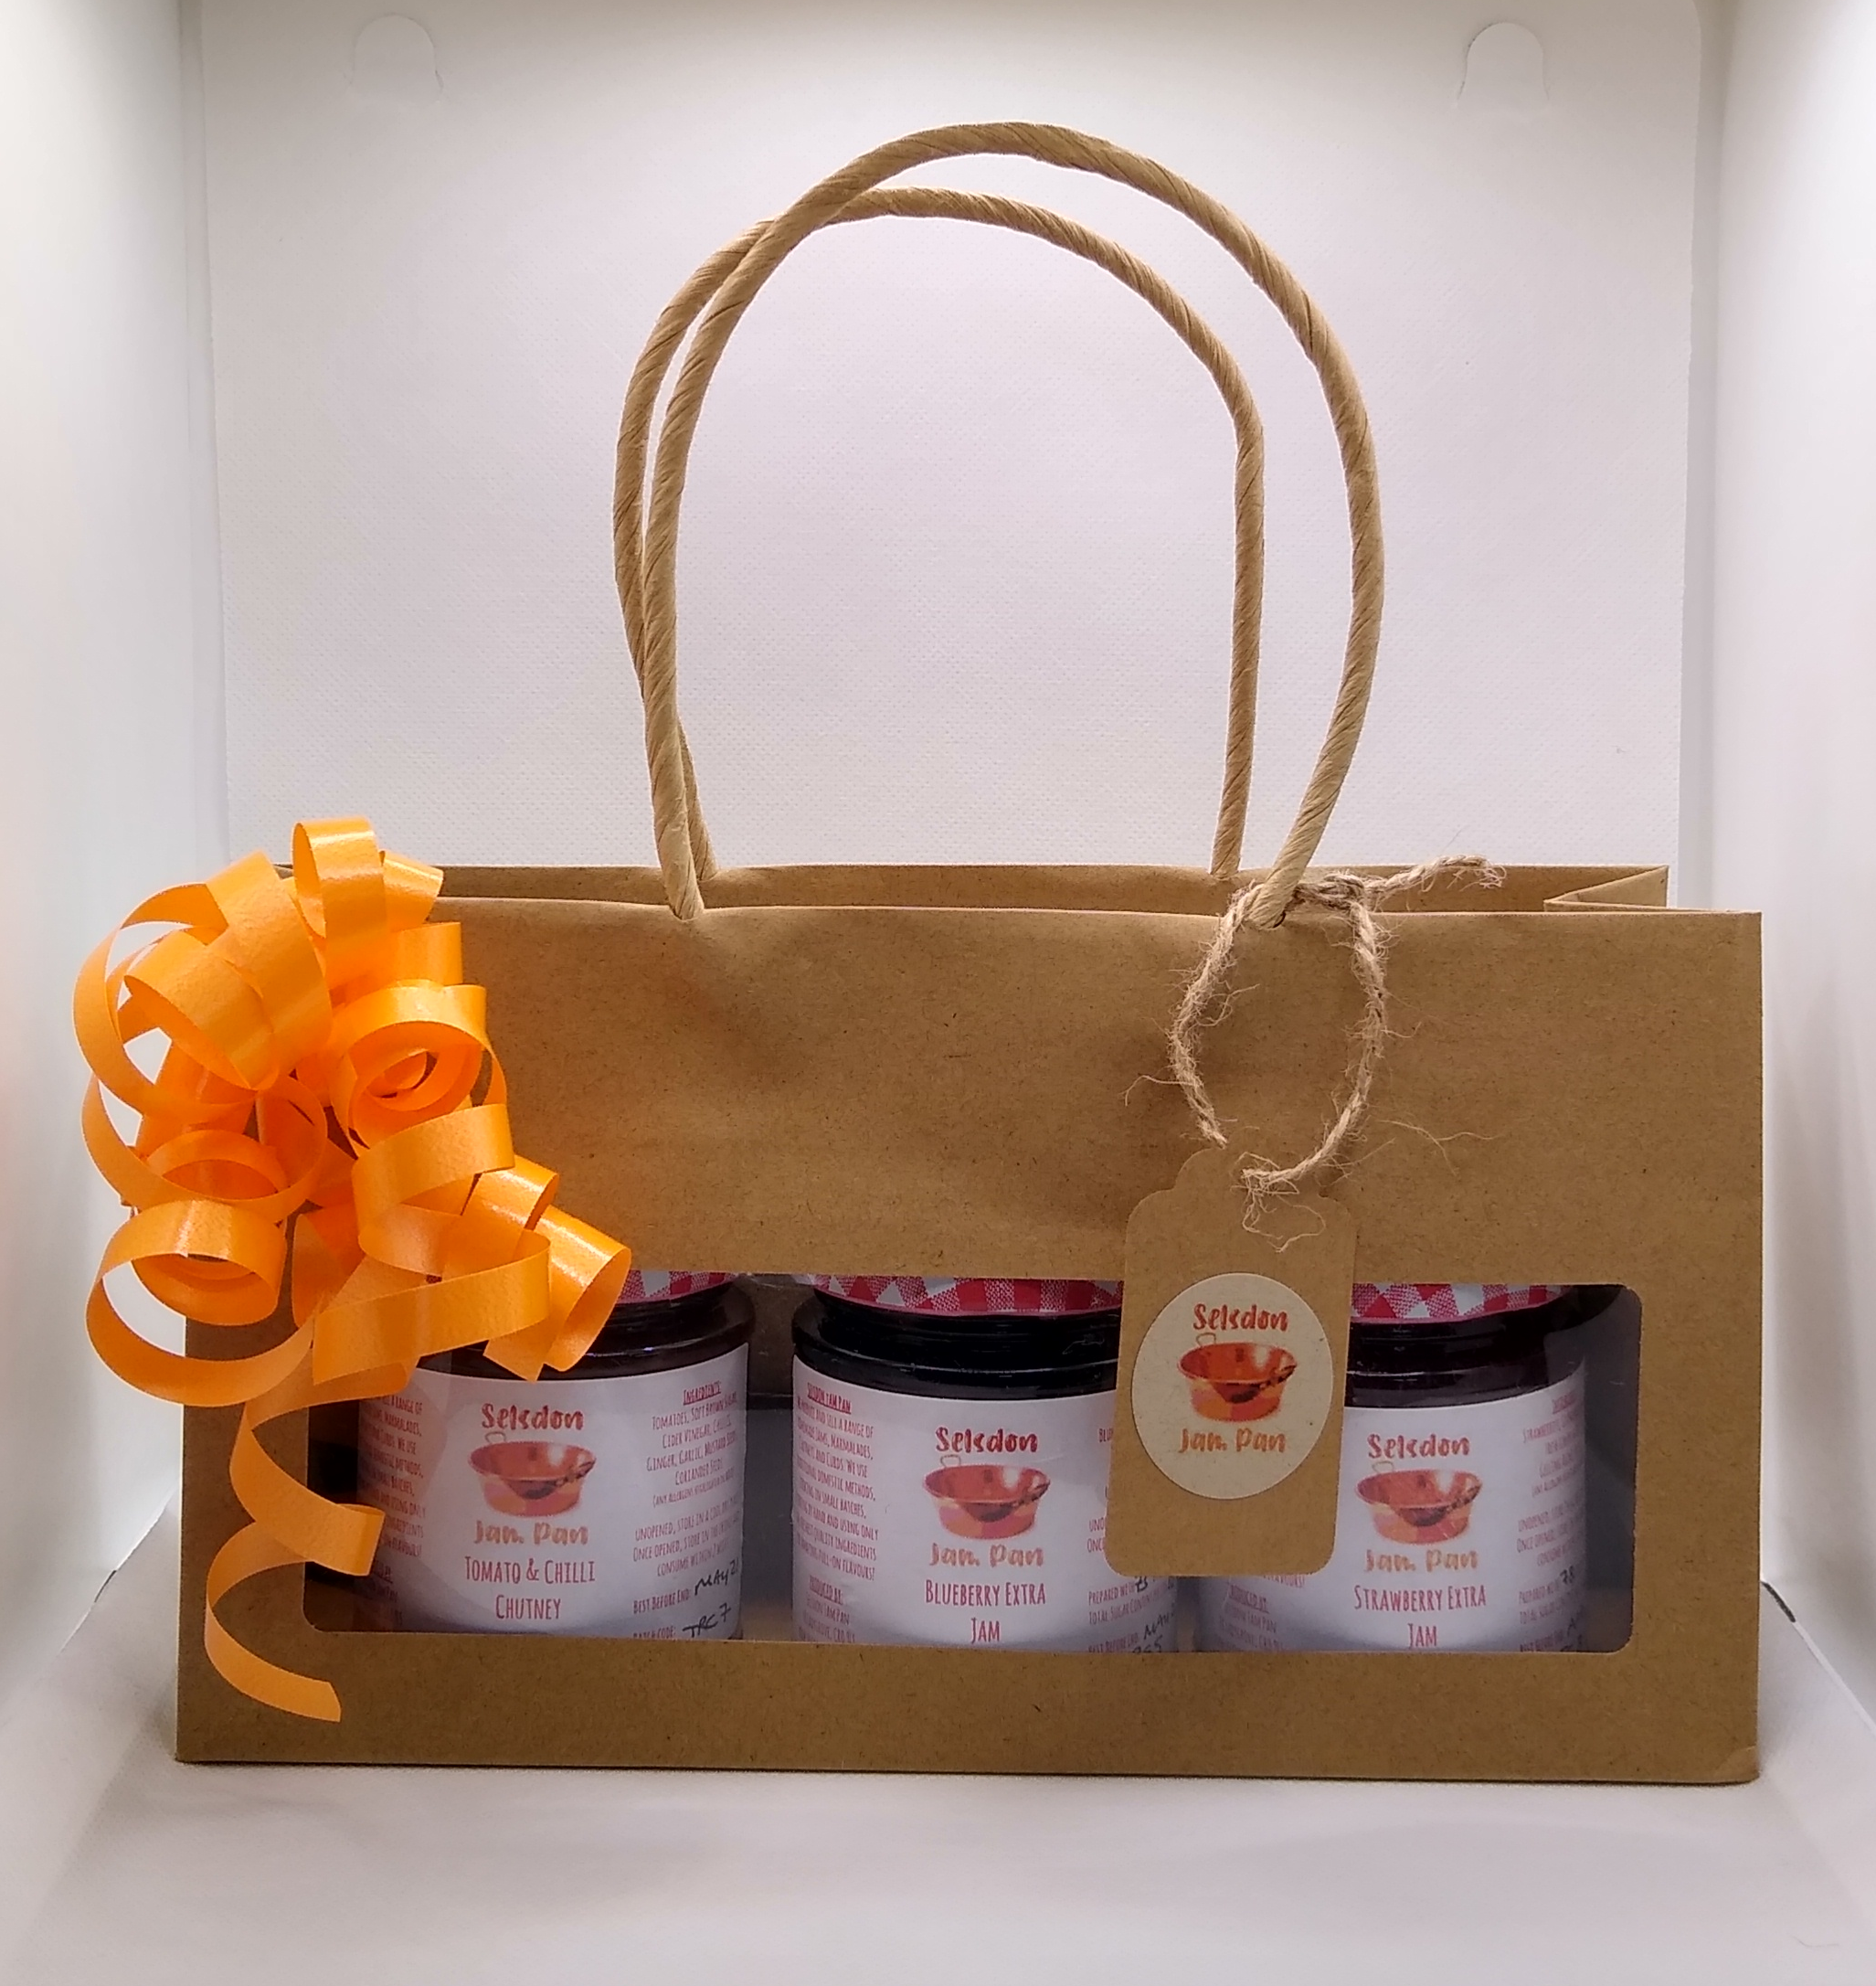 3 x ~200g Jar Gift Bag Set